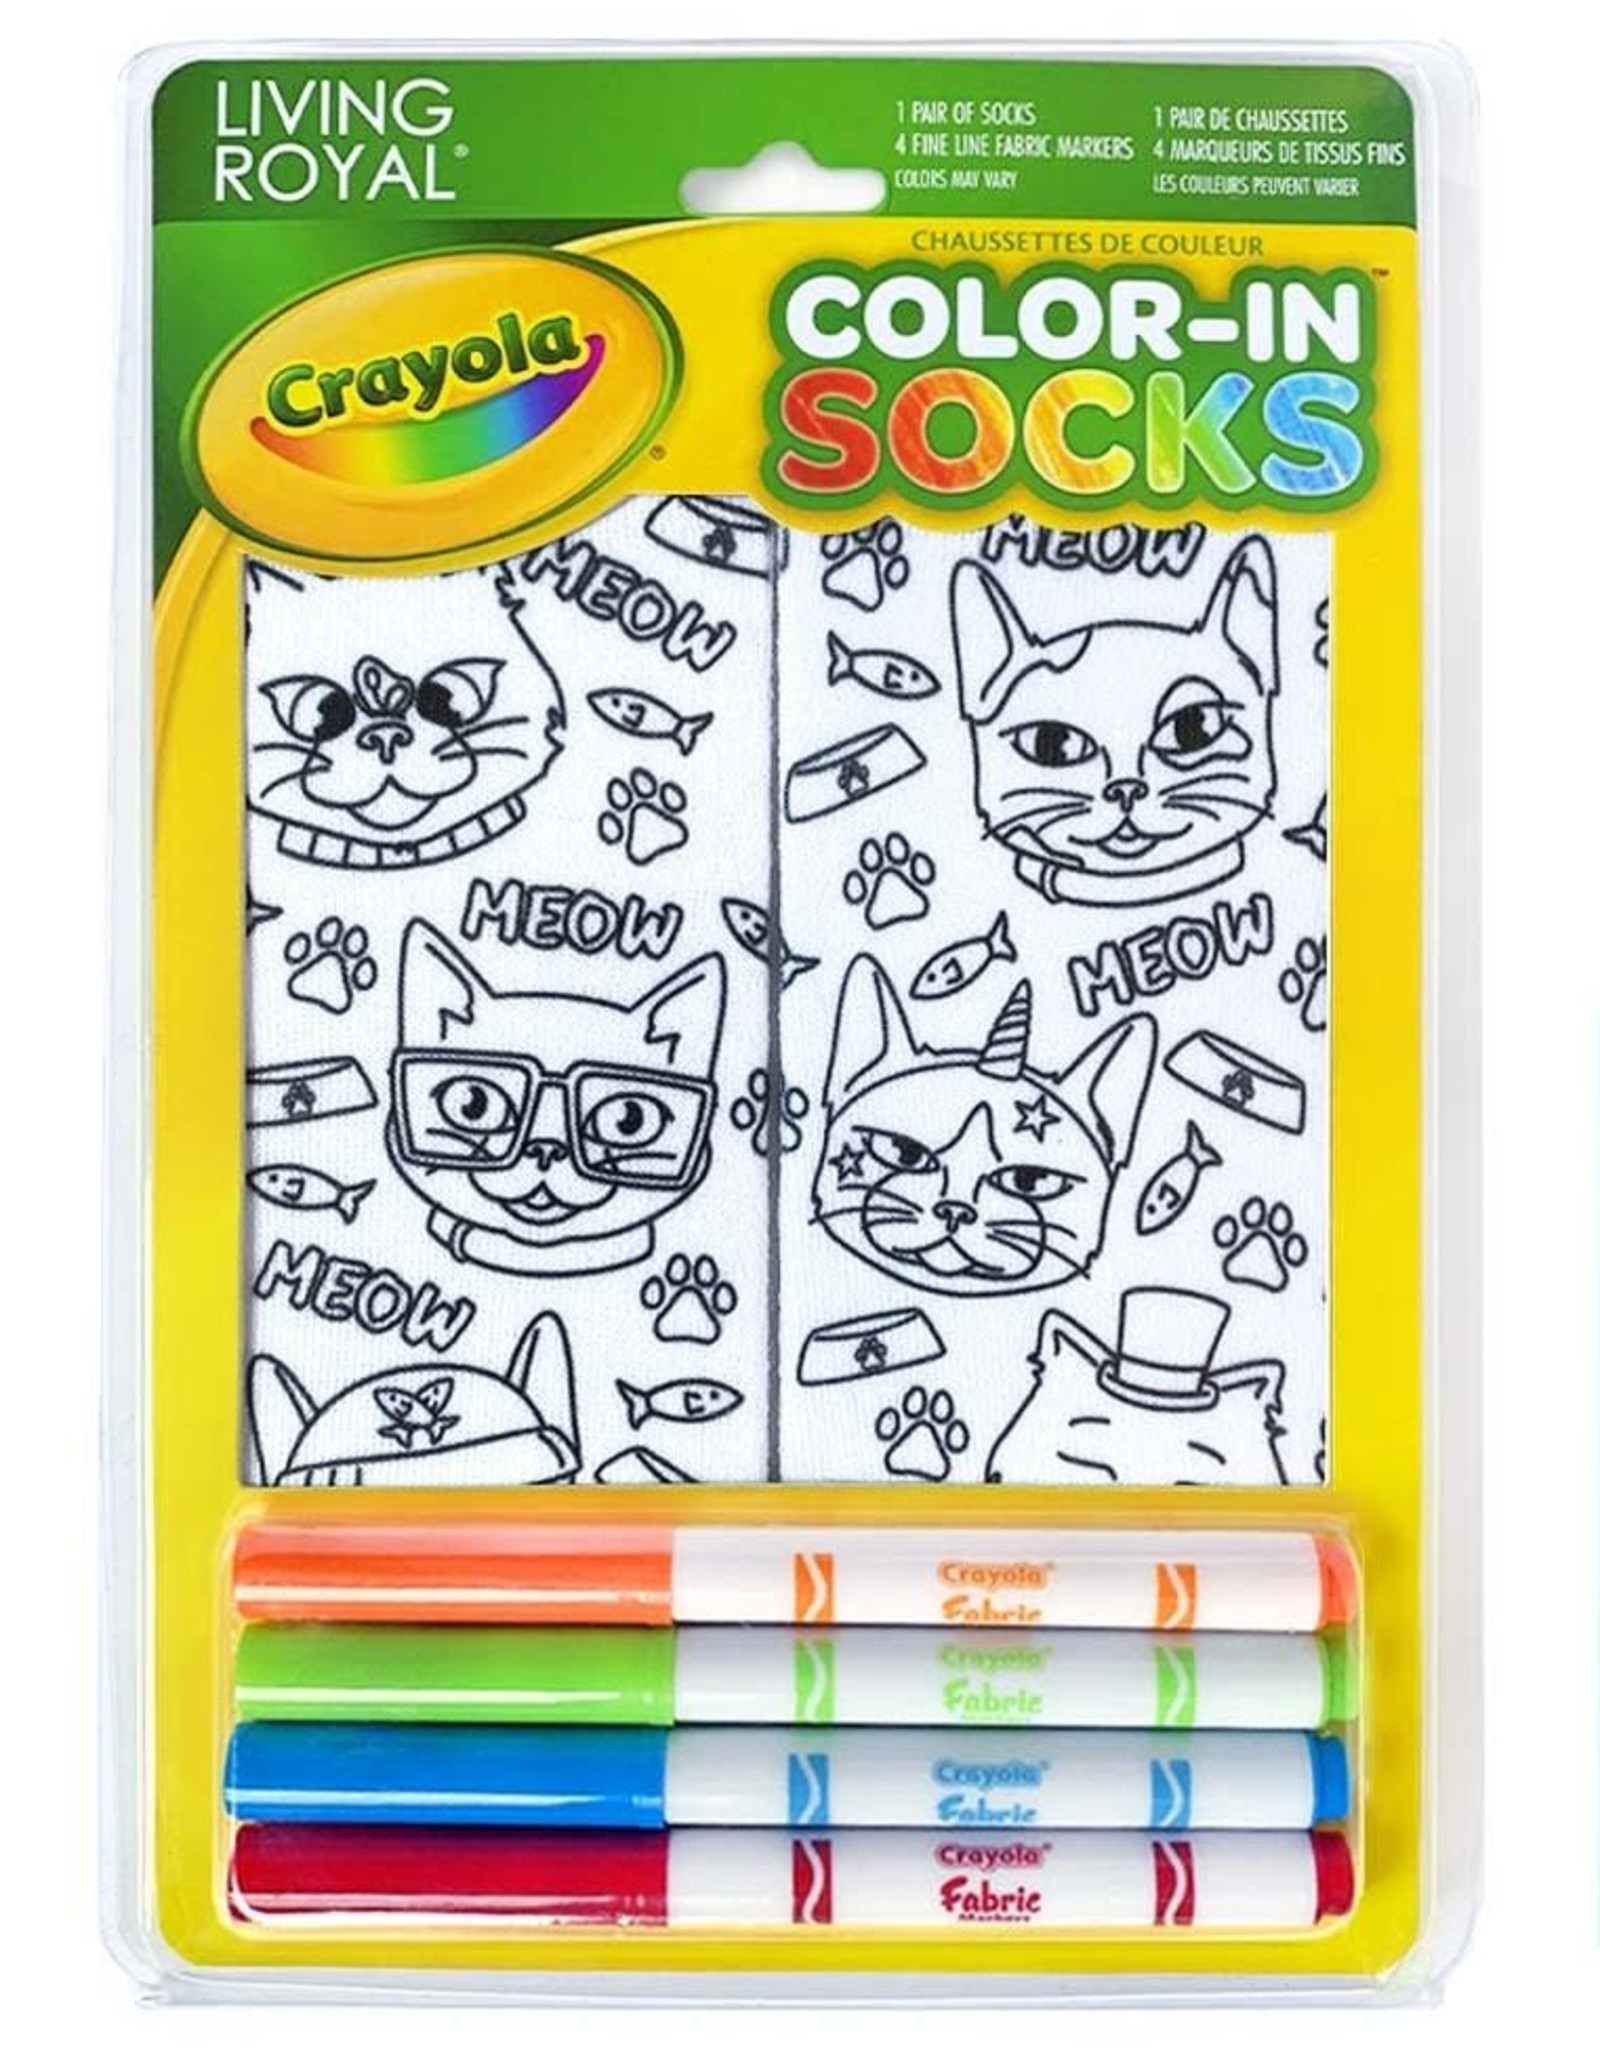 Crayola Color-In Socks: Cat Vibes